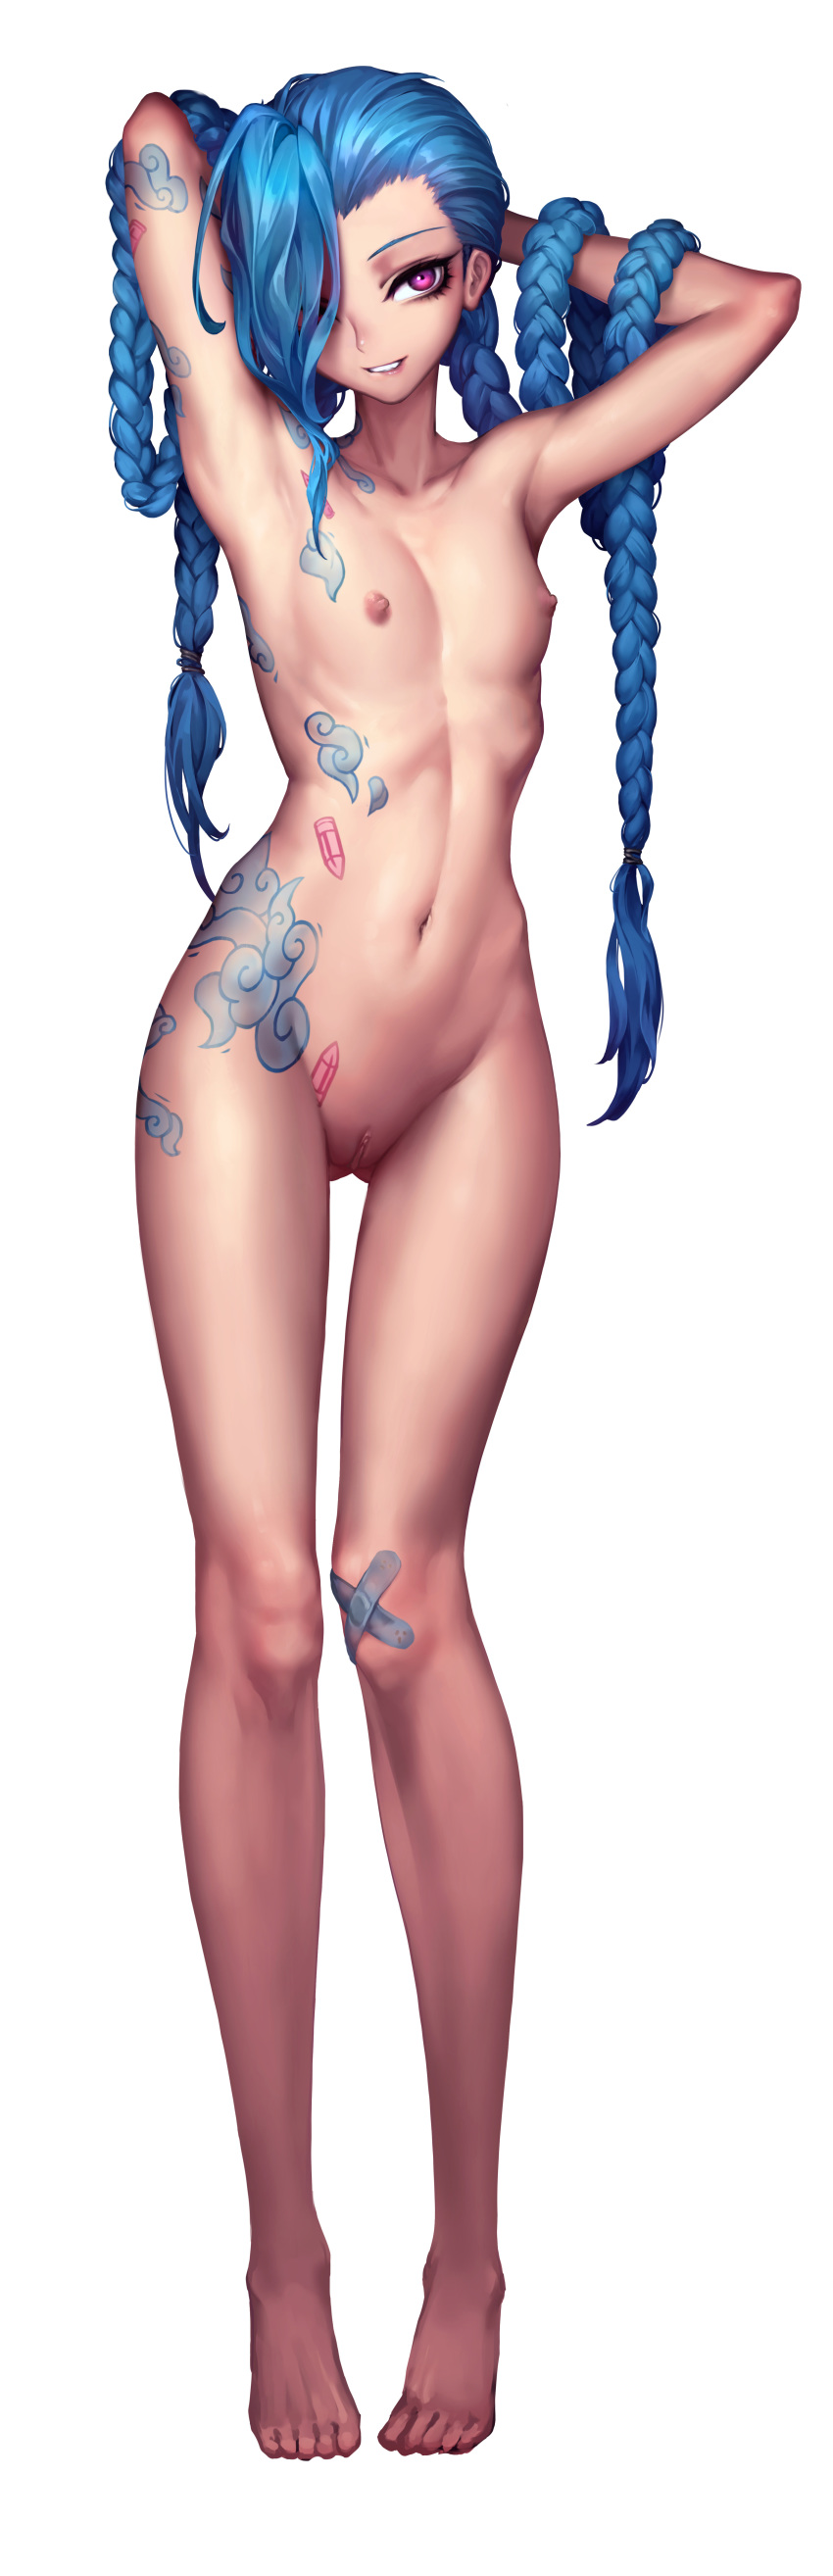 naked league of legends jinx Gay men having sex with dogs